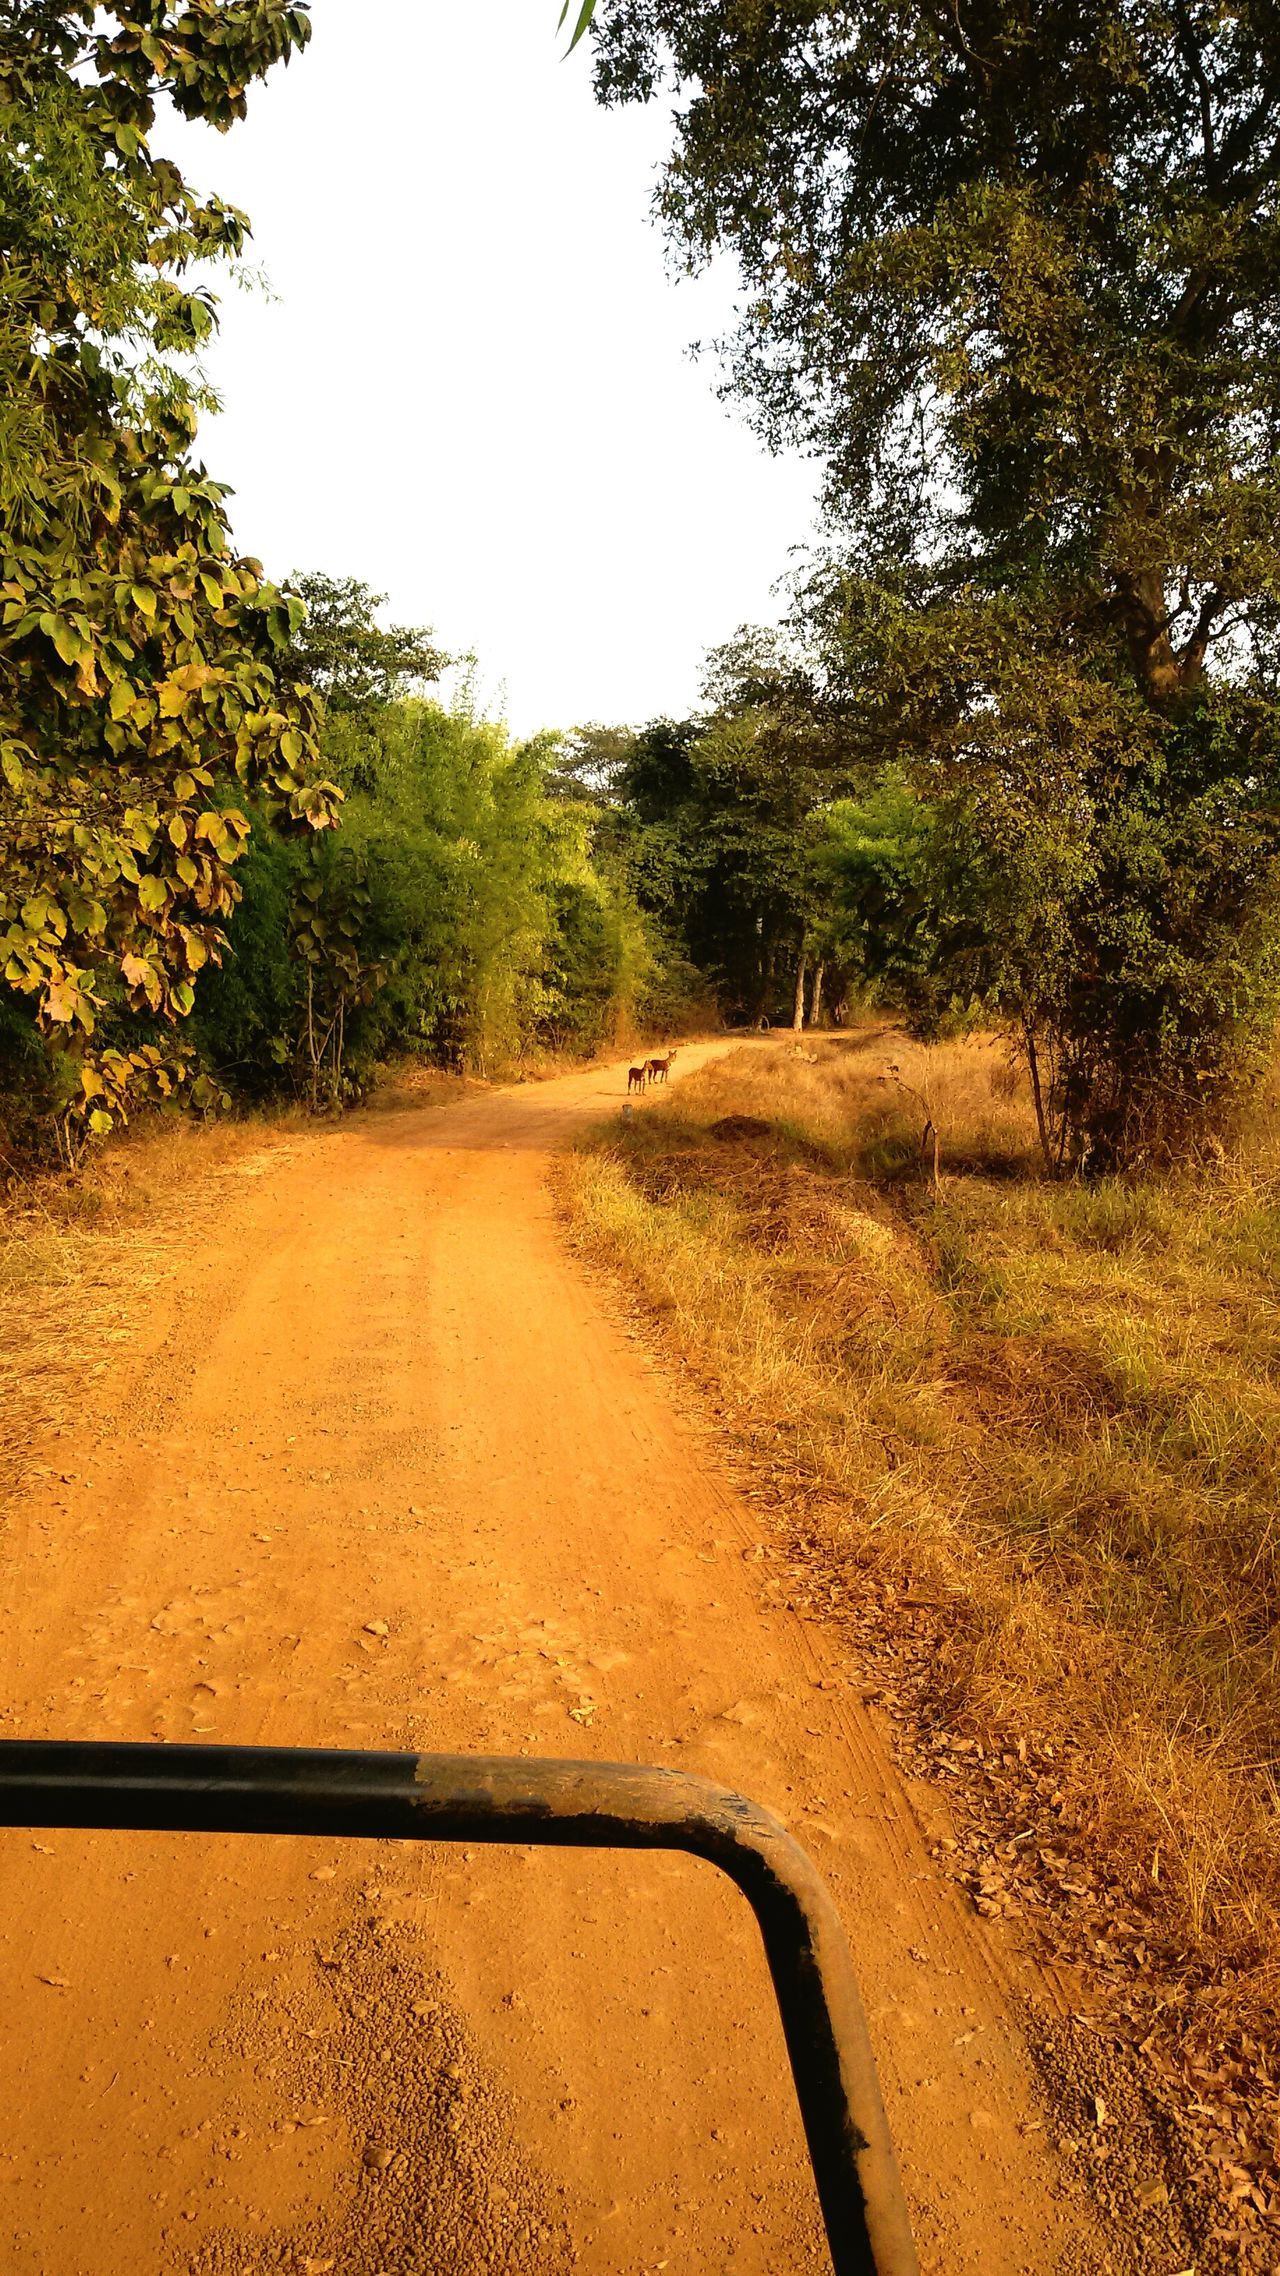 Nature Plant Dirt Road Clear Sky Tree Landscape Non-urban Scene Growth Road Junglefever Junglesafari Wildlife & Nature Wildlife Photography Wilddogs Transportation Tree Road Landscape Tranquil Scene Clear Sky Empty Mode Of Transport Tranquility Non-urban Scene Dirt Road